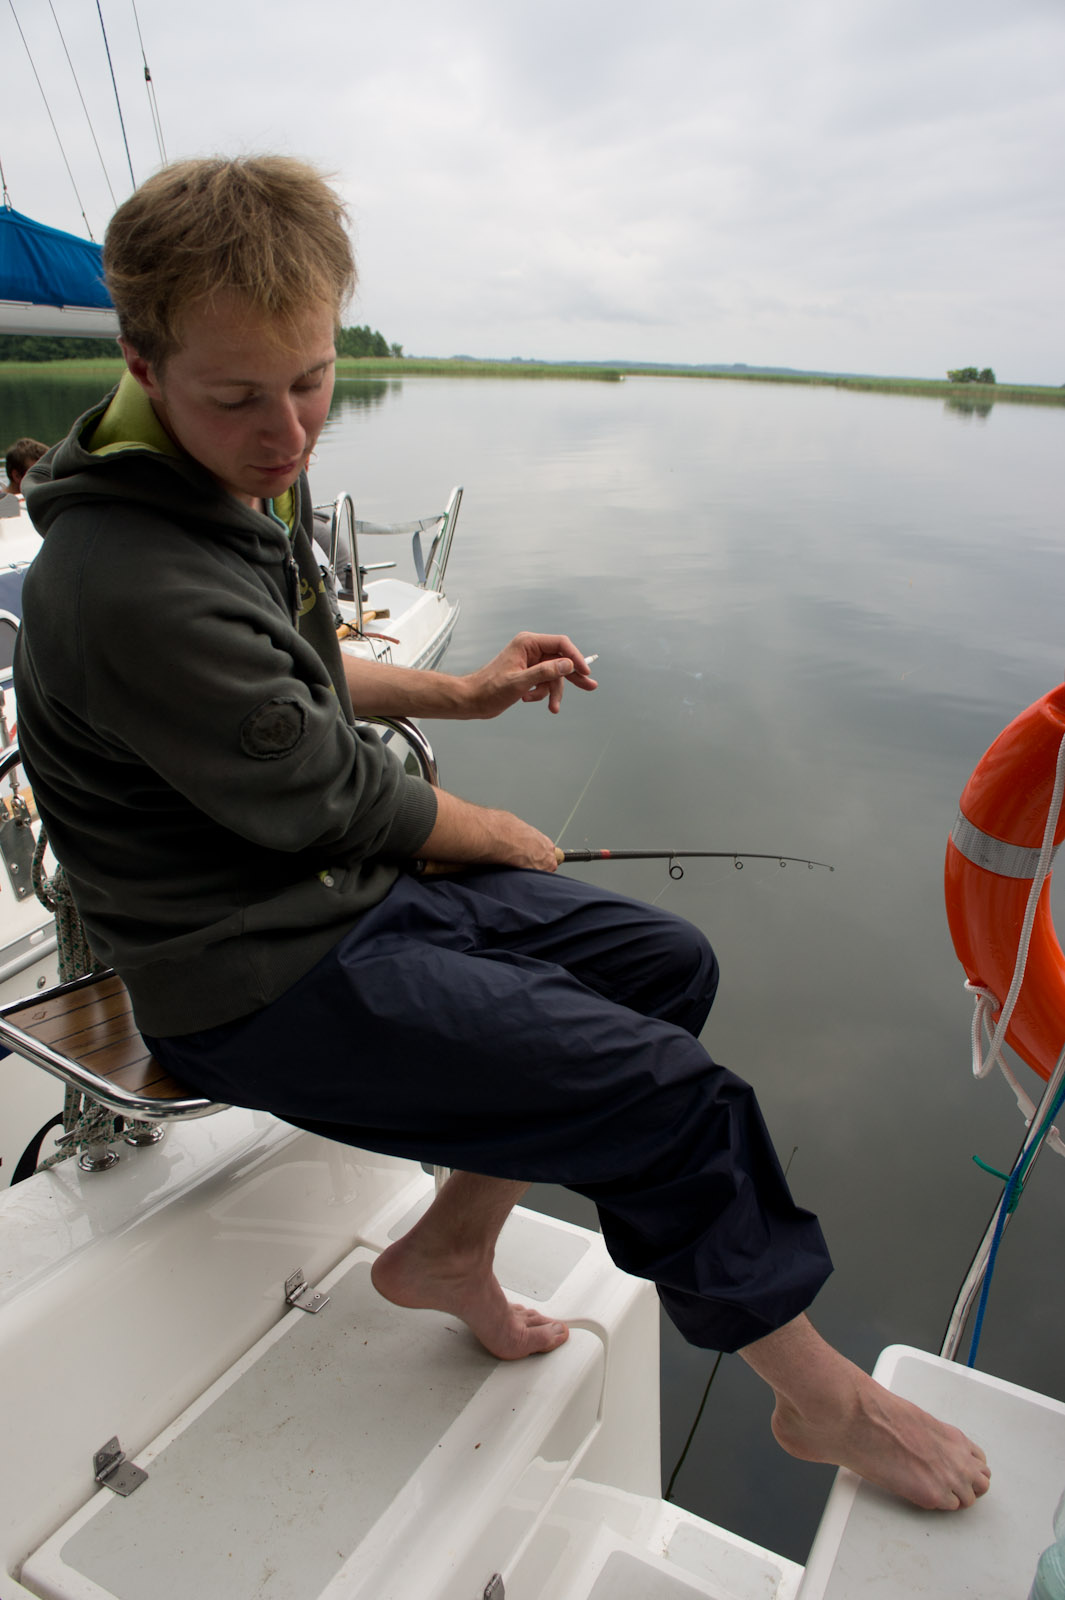 Bronek keeps feet short also during fishing